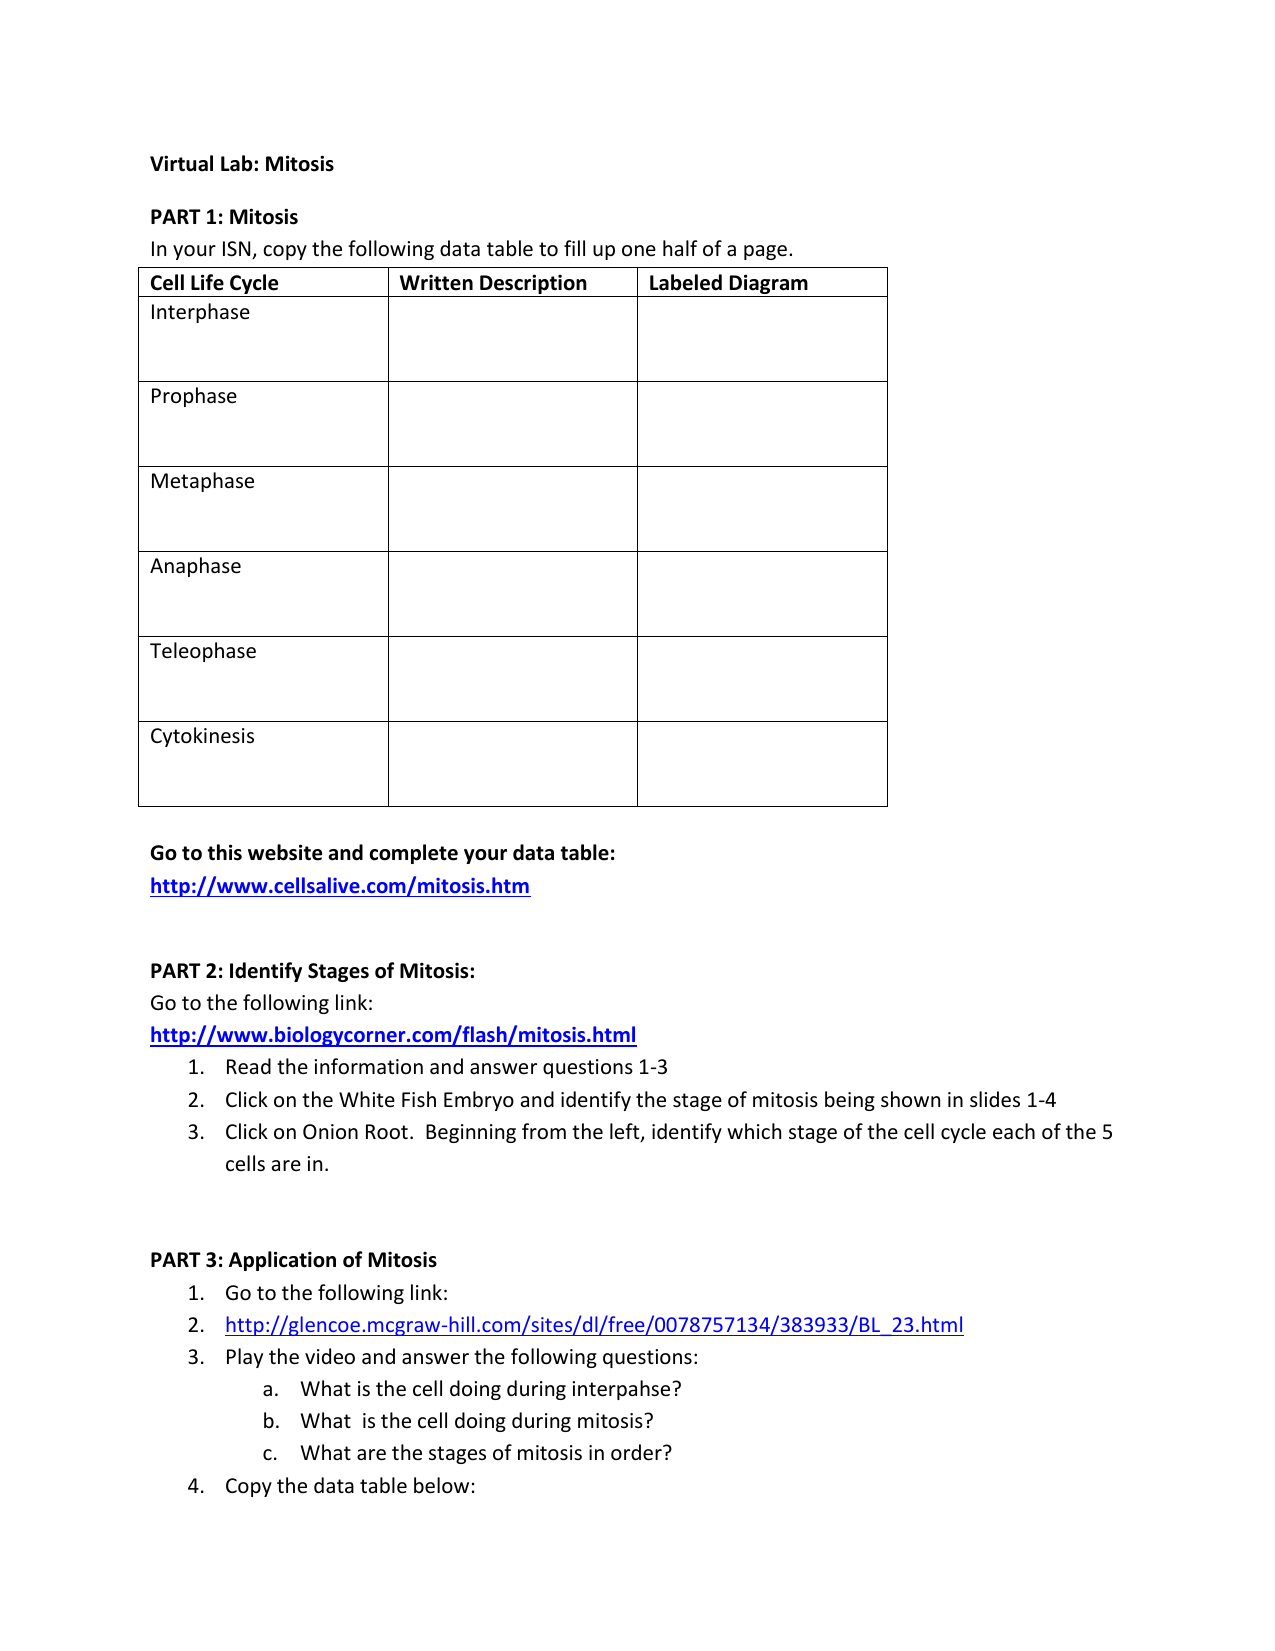 Uncategorized Virtual Lab The Cell Cycle And Cancer Worksheet virtual lab mitosis part 1 in your isn copy the following